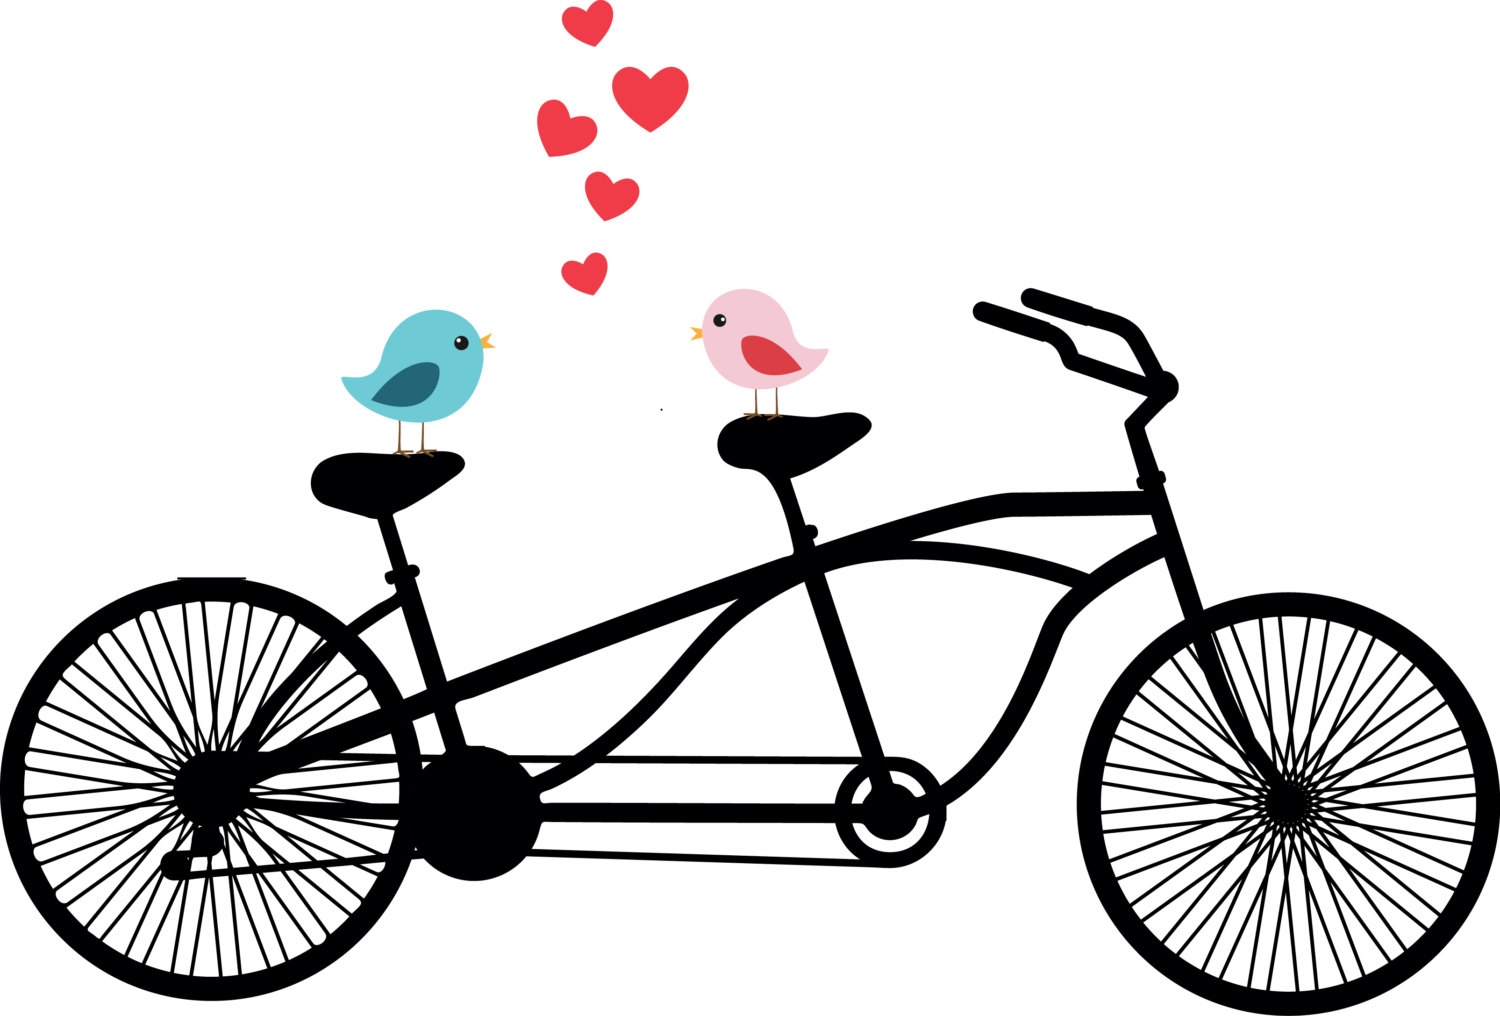 bike silhouette images at getdrawings com free for personal use rh getdrawings com bike clipart sunset bike clip art images